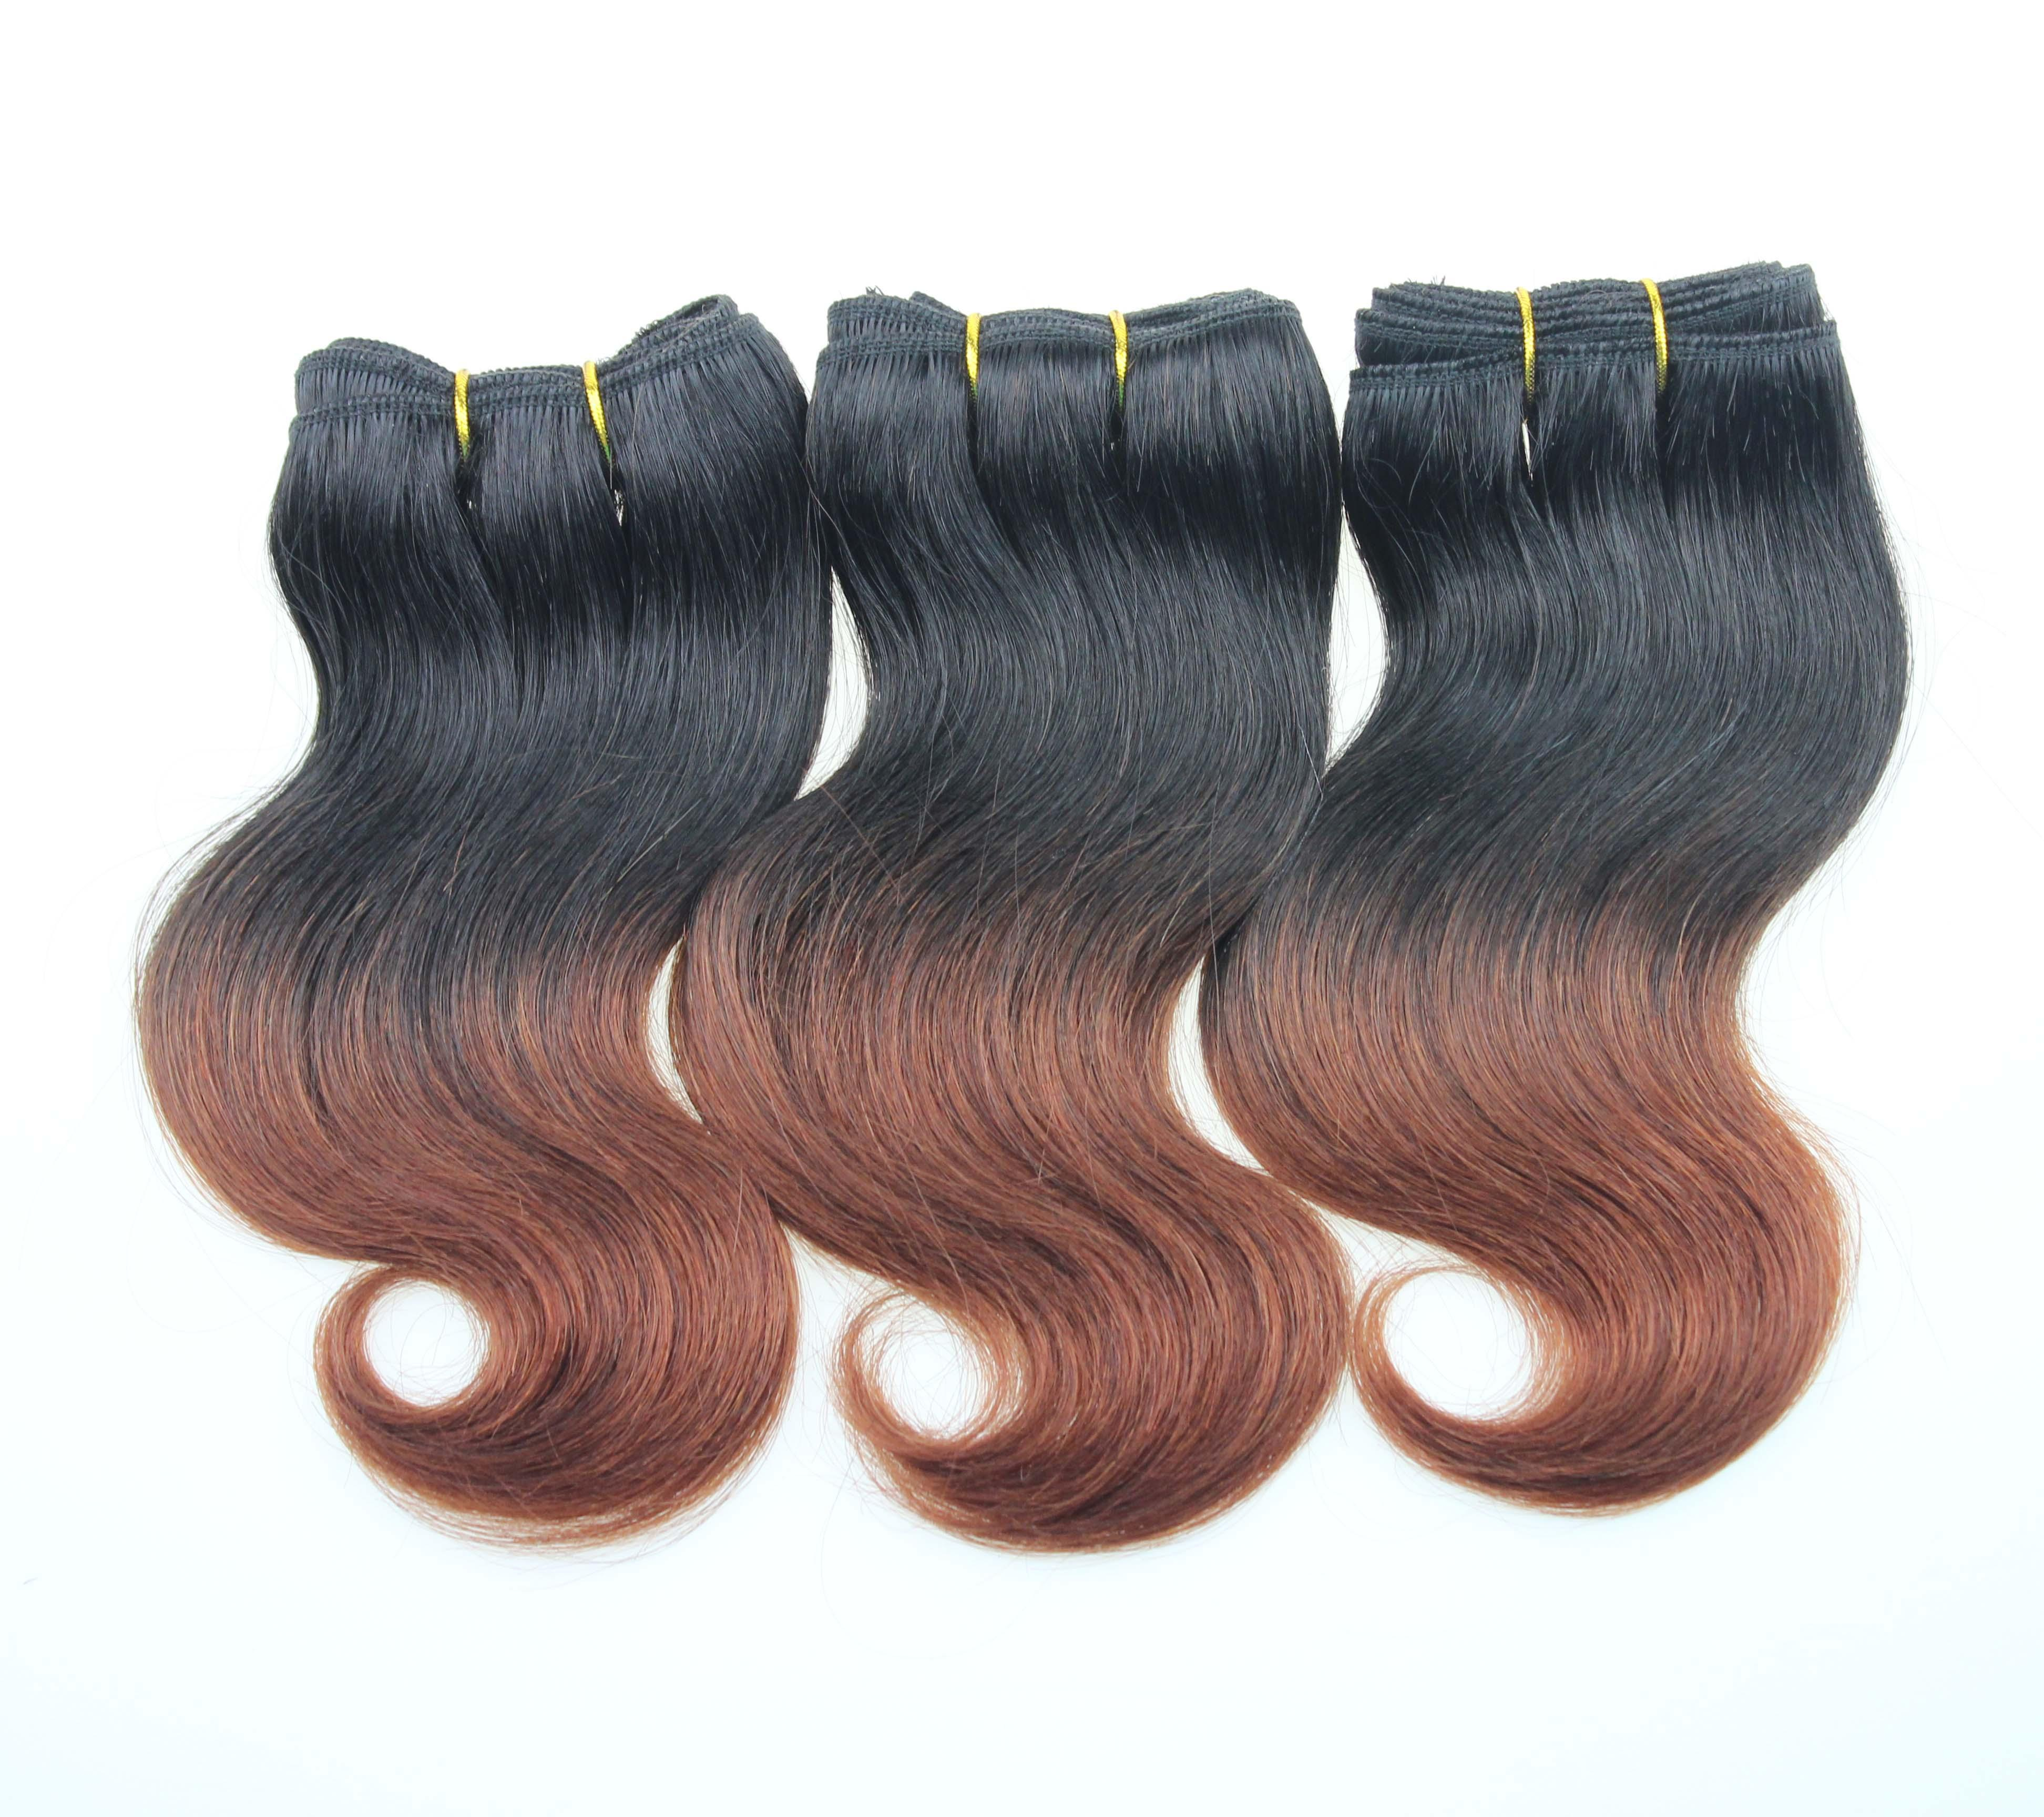 2016 Fashion Full Head Hair Extensions Body Weave Accessories 6 8